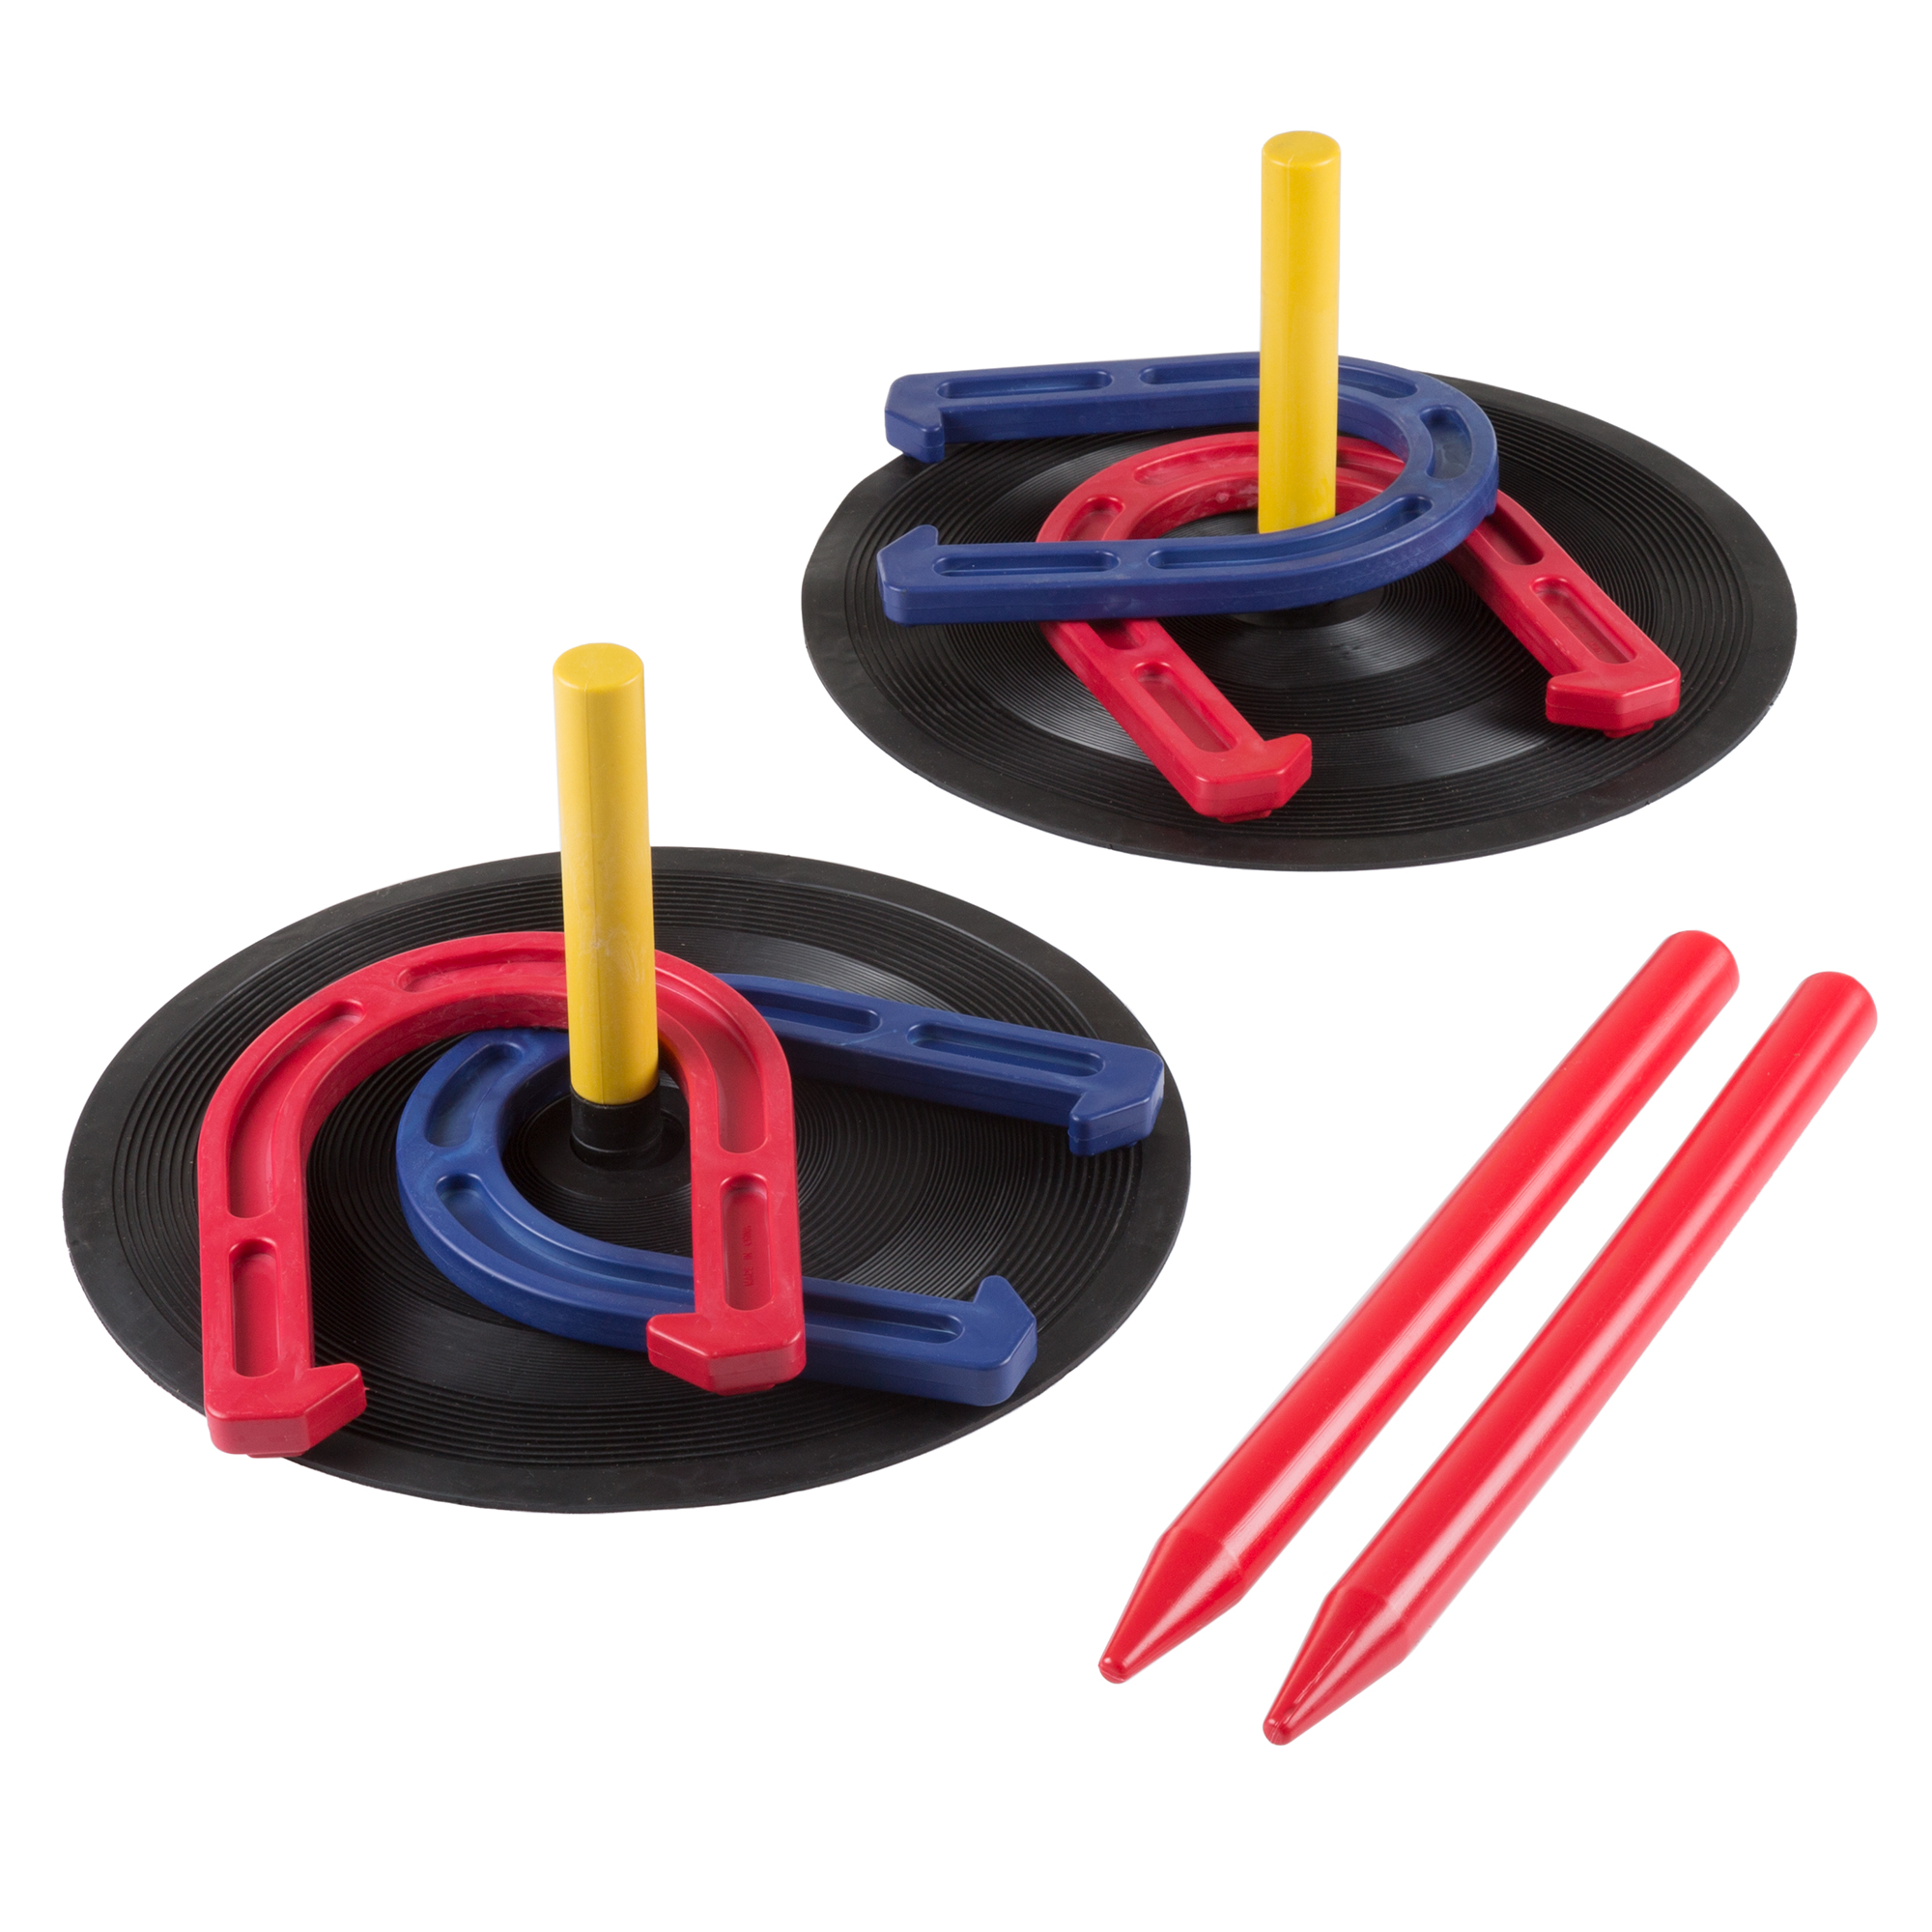 Rubber Horseshoes Game Set for Outdoor and Indoor Games - Perfect for Tailgating, Camping, Backyard by Hey! Play!